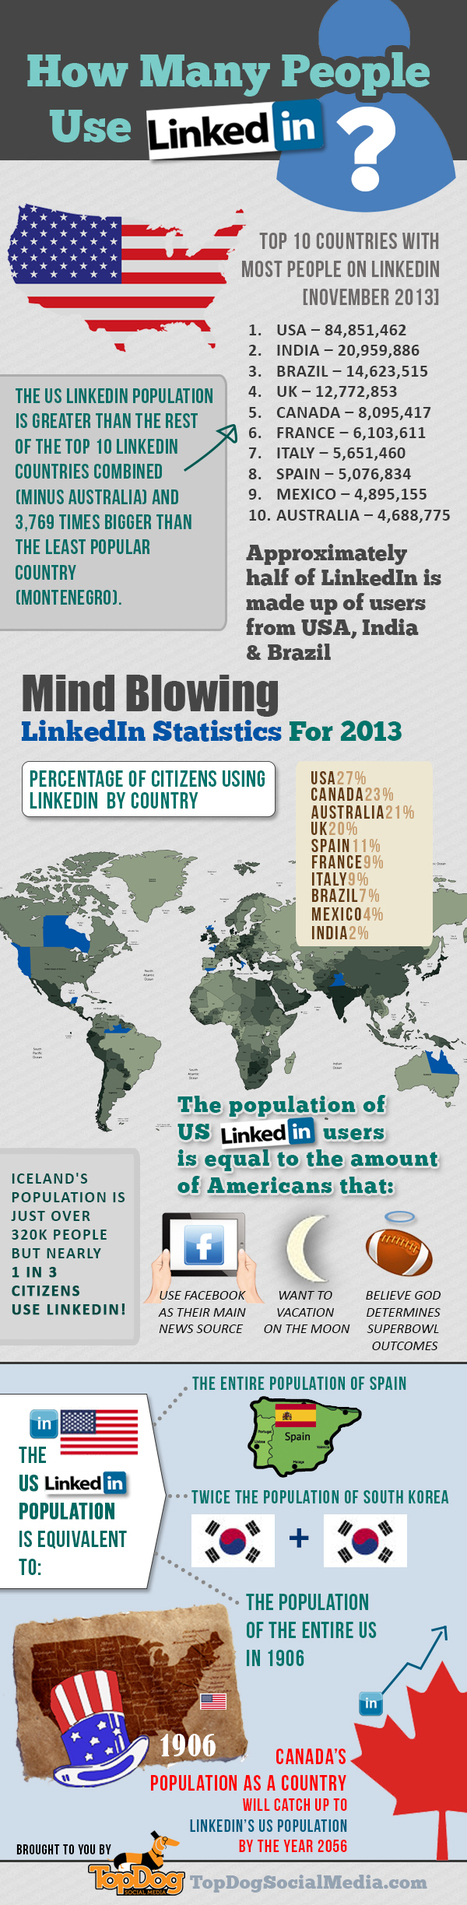 How Many People Use LinkedIn? [Infographic] | Social Media Resources & e-learning | Scoop.it